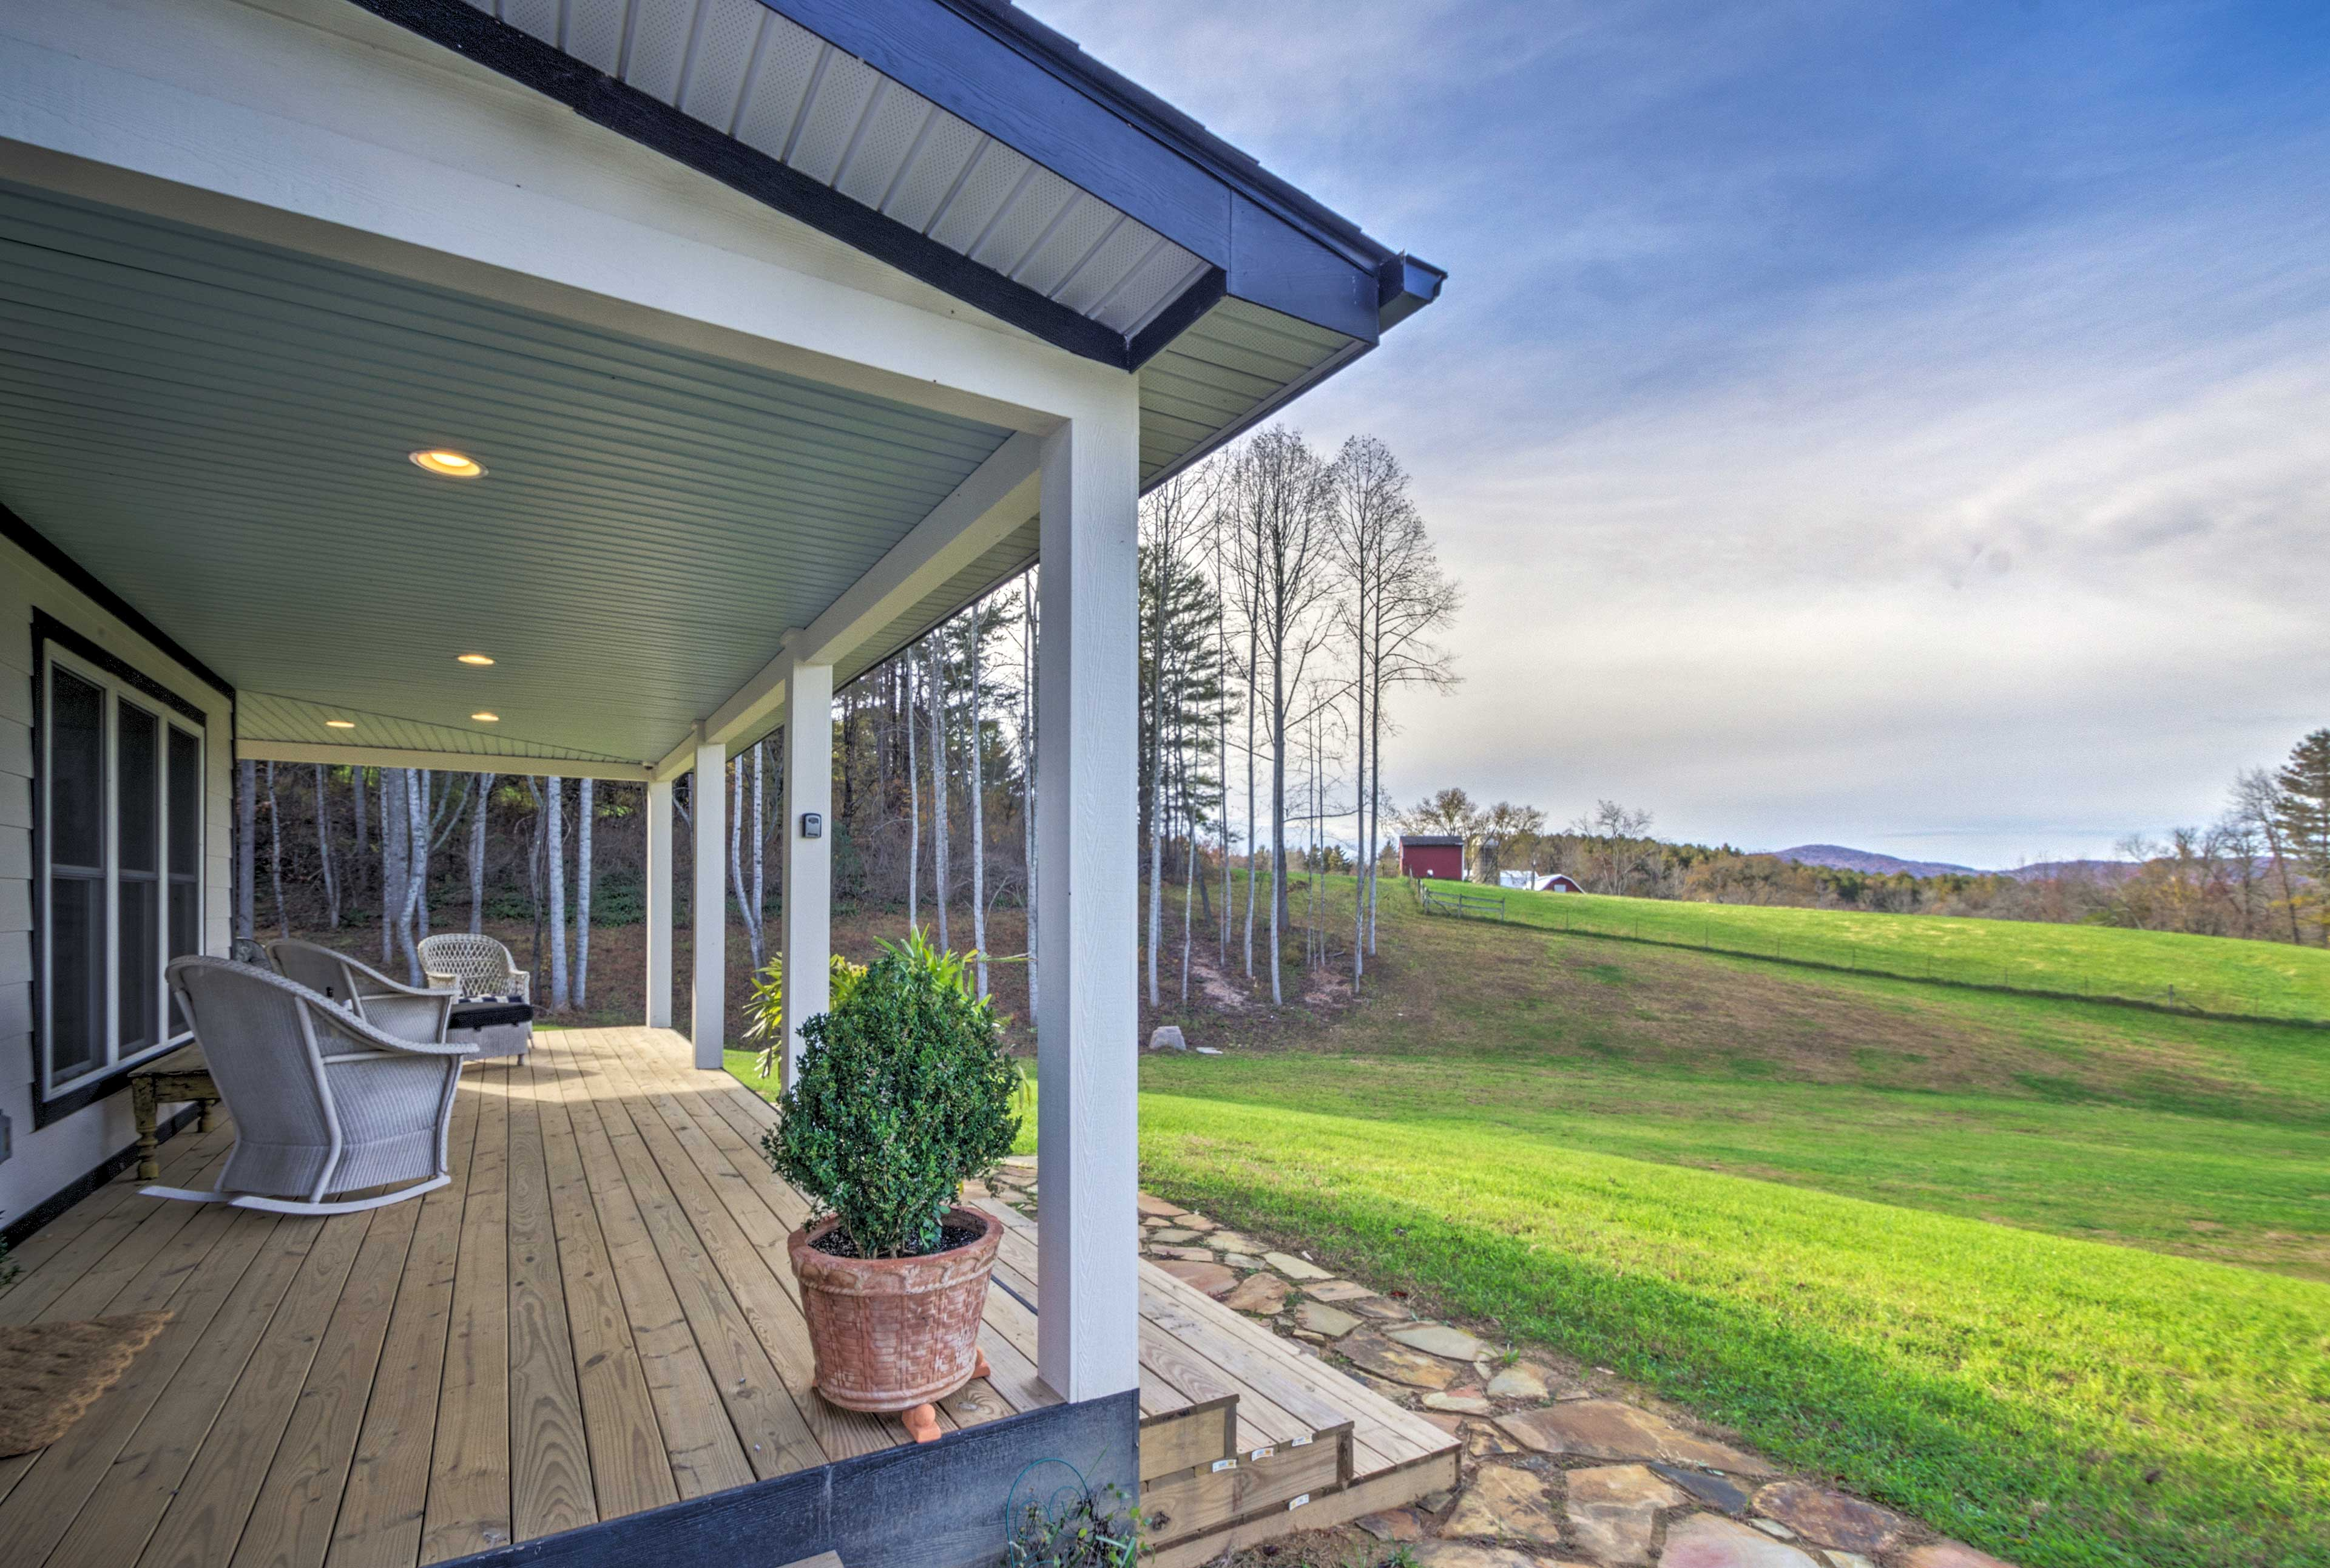 Unplug and reconnect with nature at this Fairview vacation rental home!